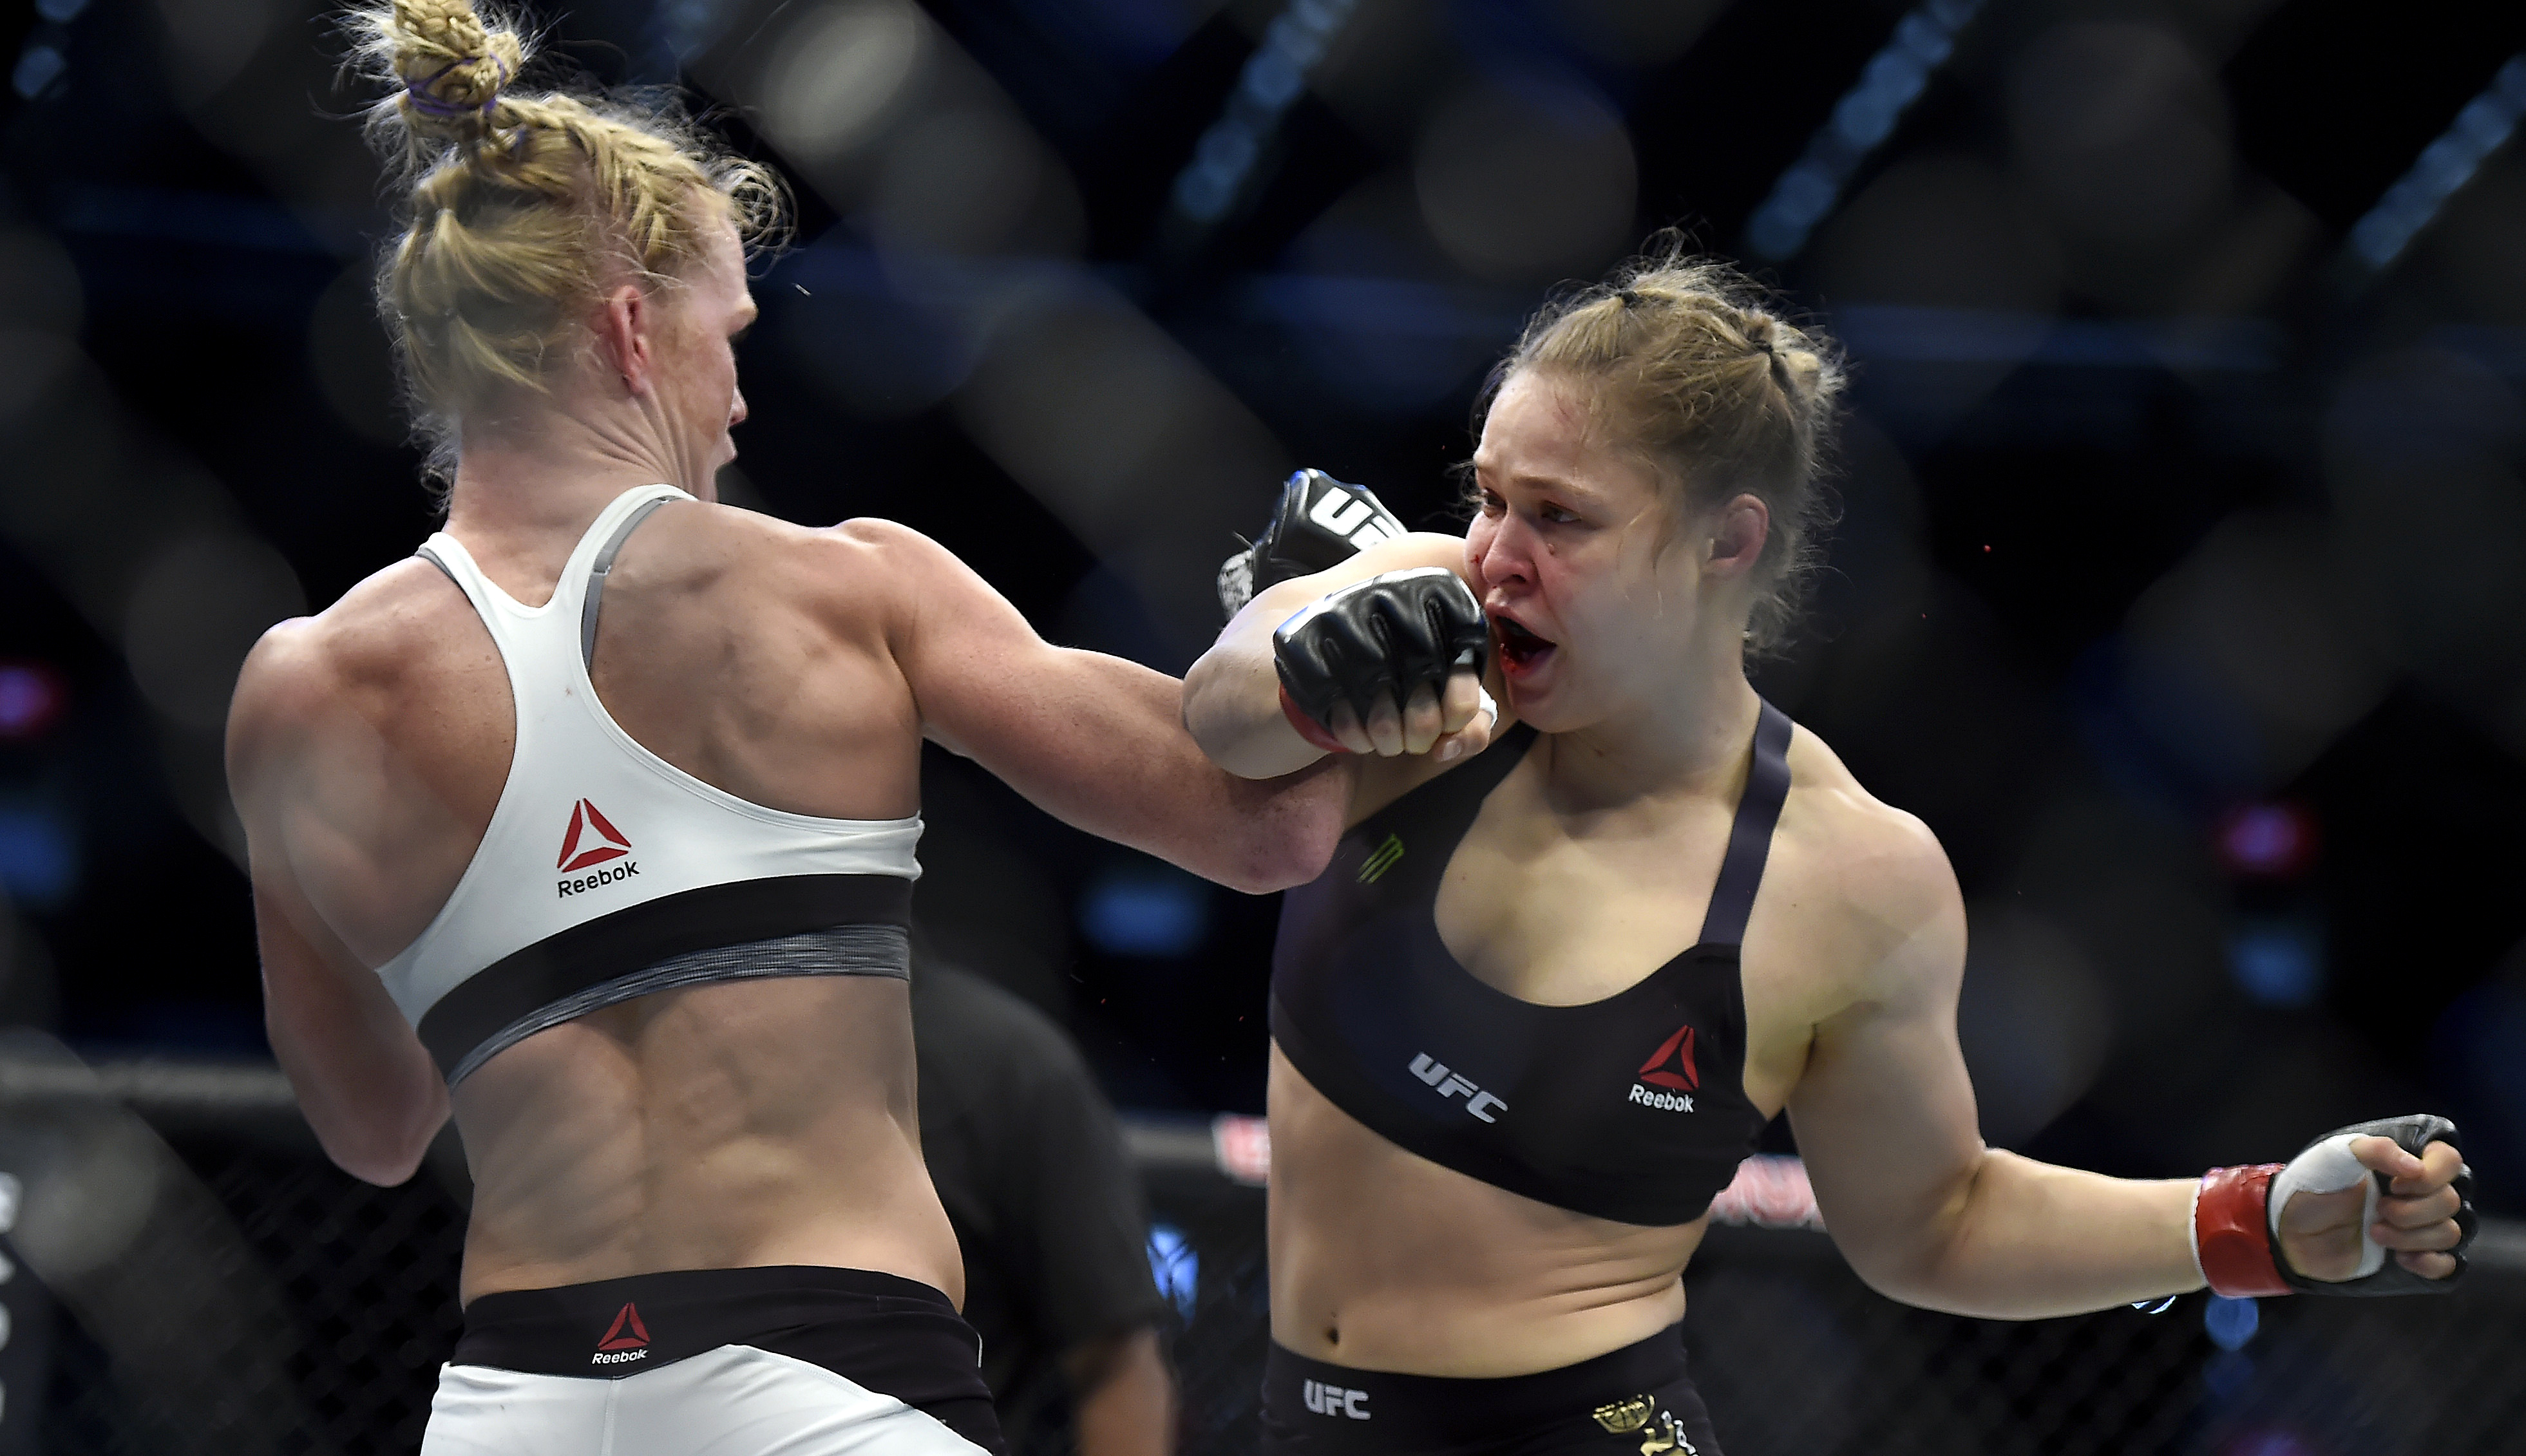 Holly Holm, left, and Ronda Rousey exchange their punches during their UFC 193 bantamweight title fight in Melbourne, Australia, Sunday, Nov. 15, 2015